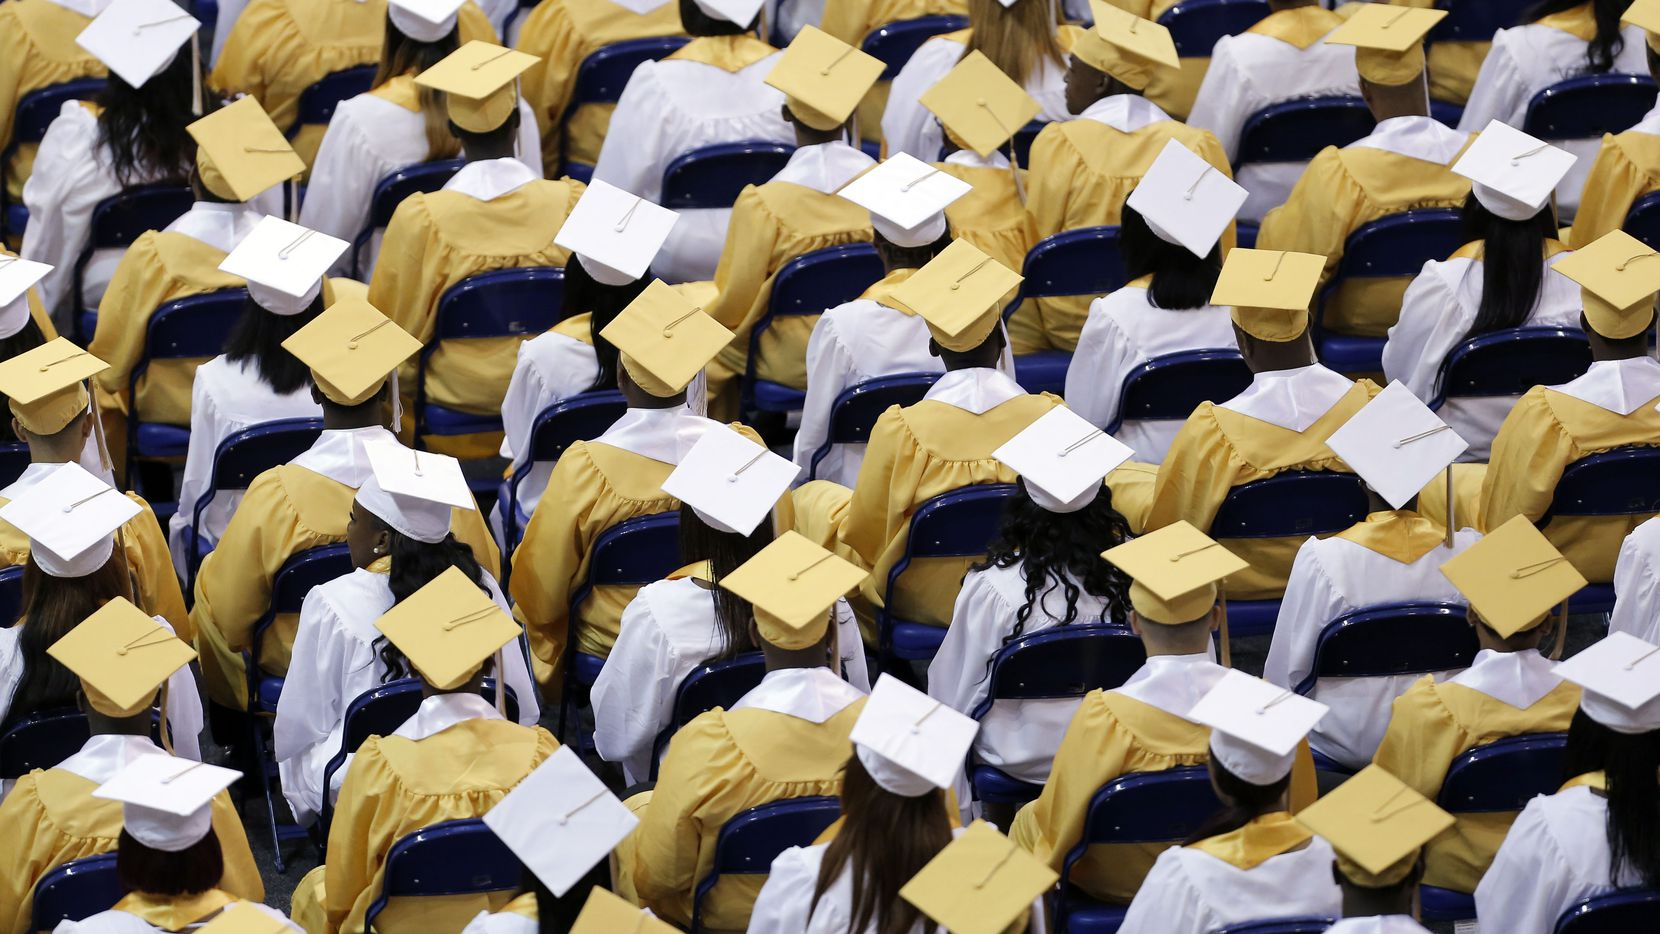 Dallas ISD announced that the district's 2020 high school graduation ceremonies will be virtual because of the coronavirus pandemic.